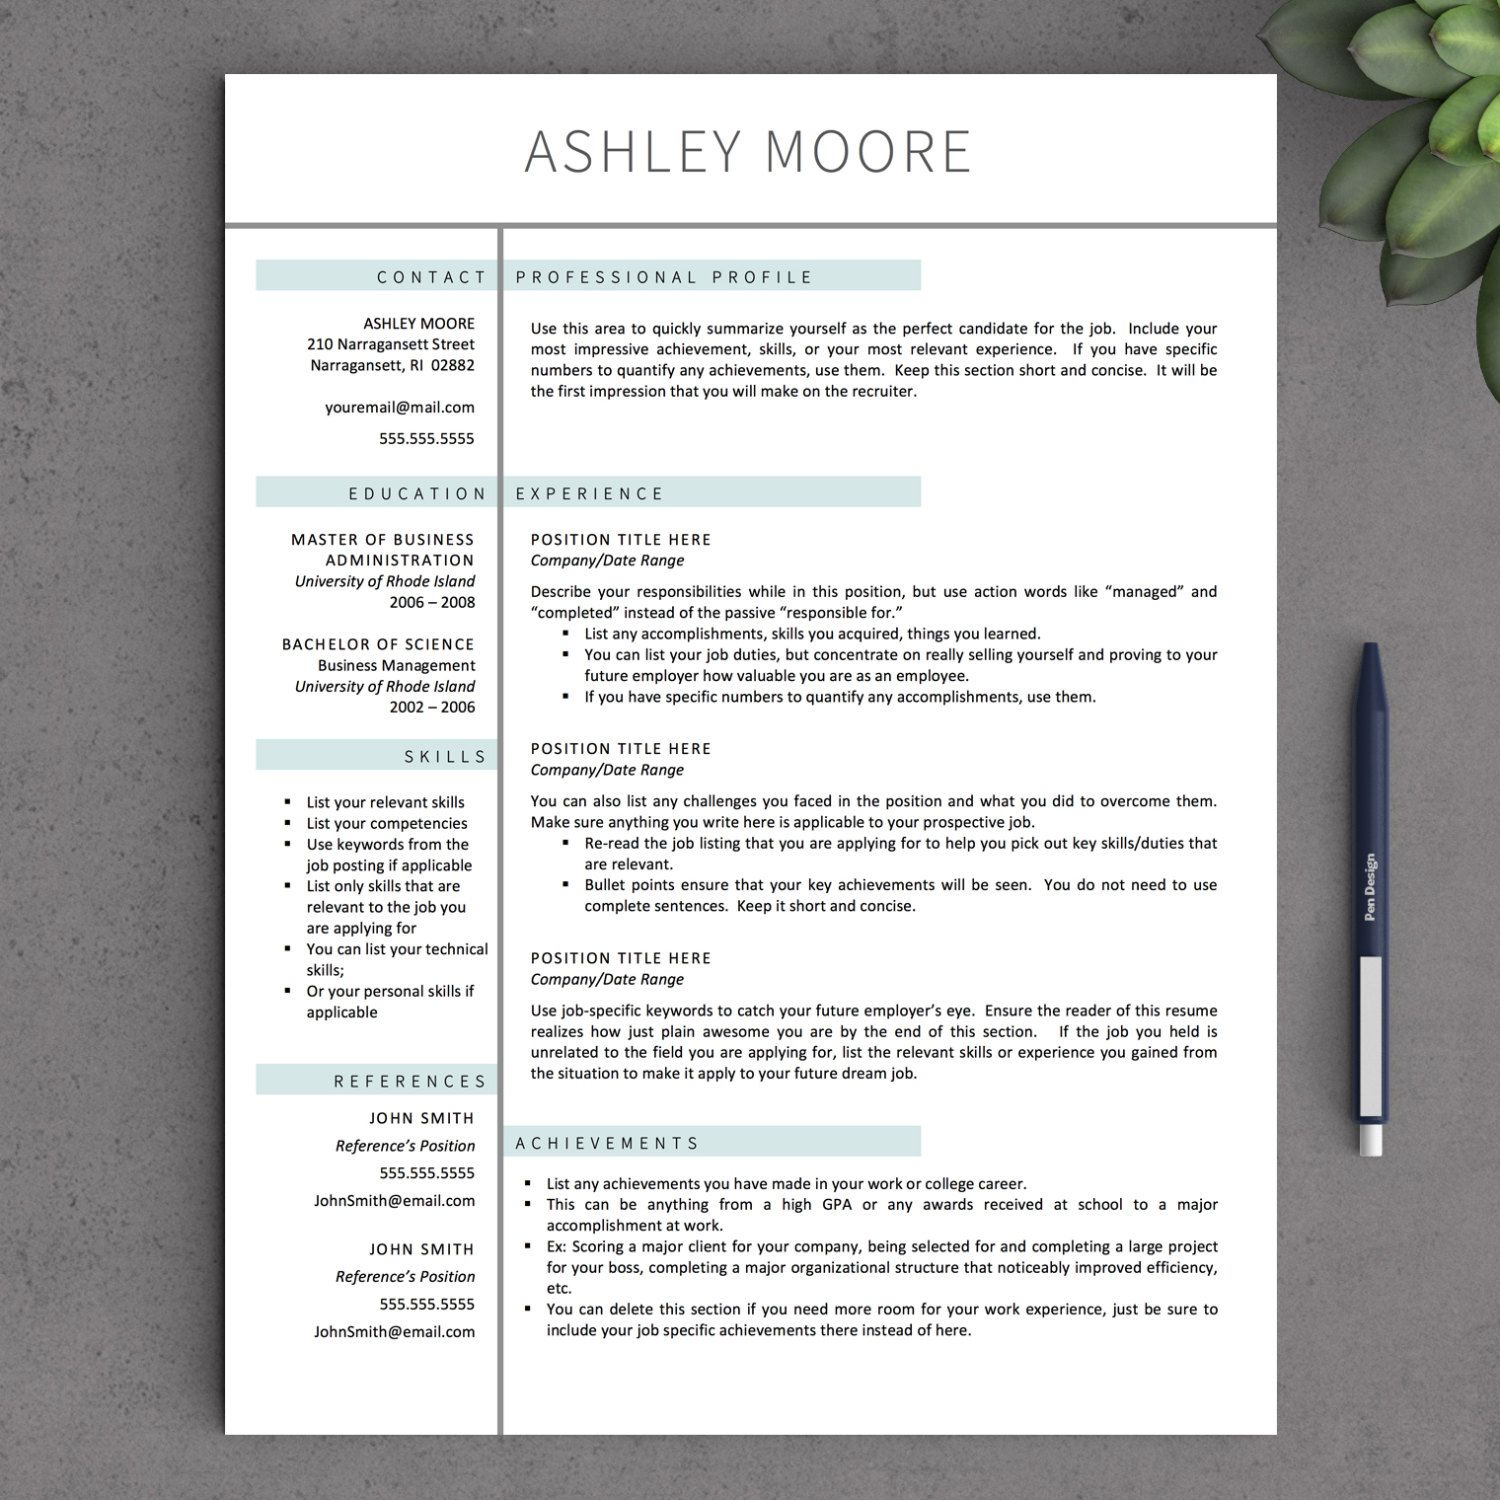 Apple Pages Resume Template Download Apple Pages Resume Template Download,  Appleu2026 | Documents | Pinterest | Resume Template Download, Resume Template  Free ...  Resume Software Free